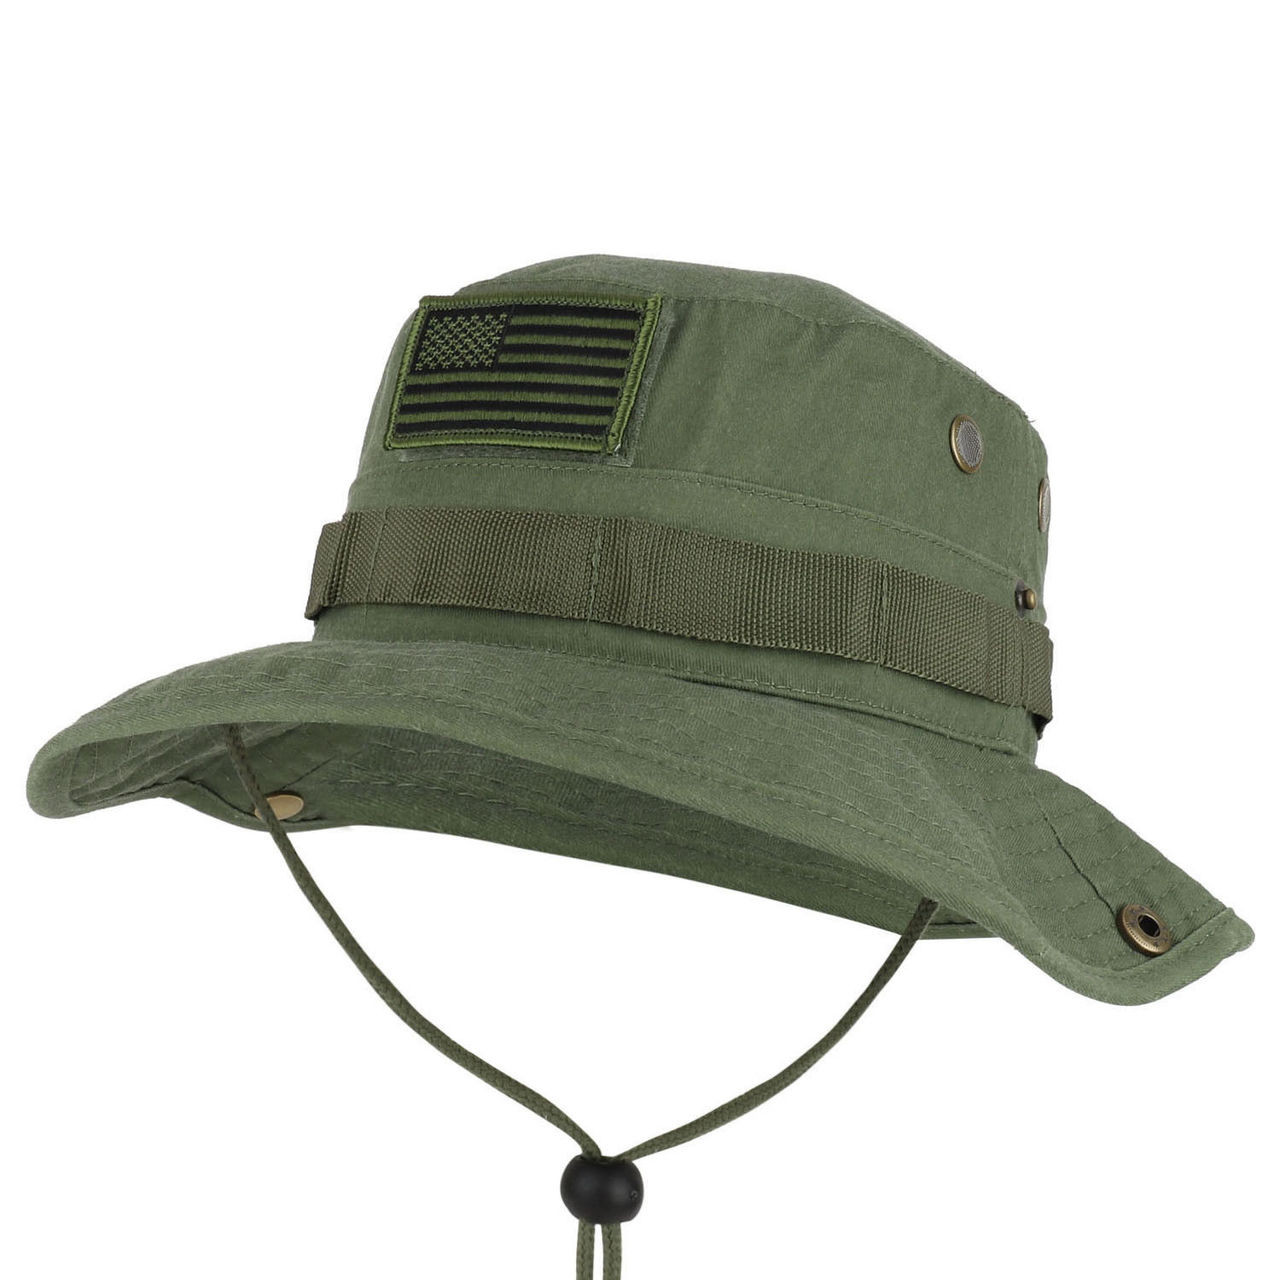 9797344ba7237 6770 Eagle Crest Boonie Hat Olive Drab 100% Cotton (OSFM)